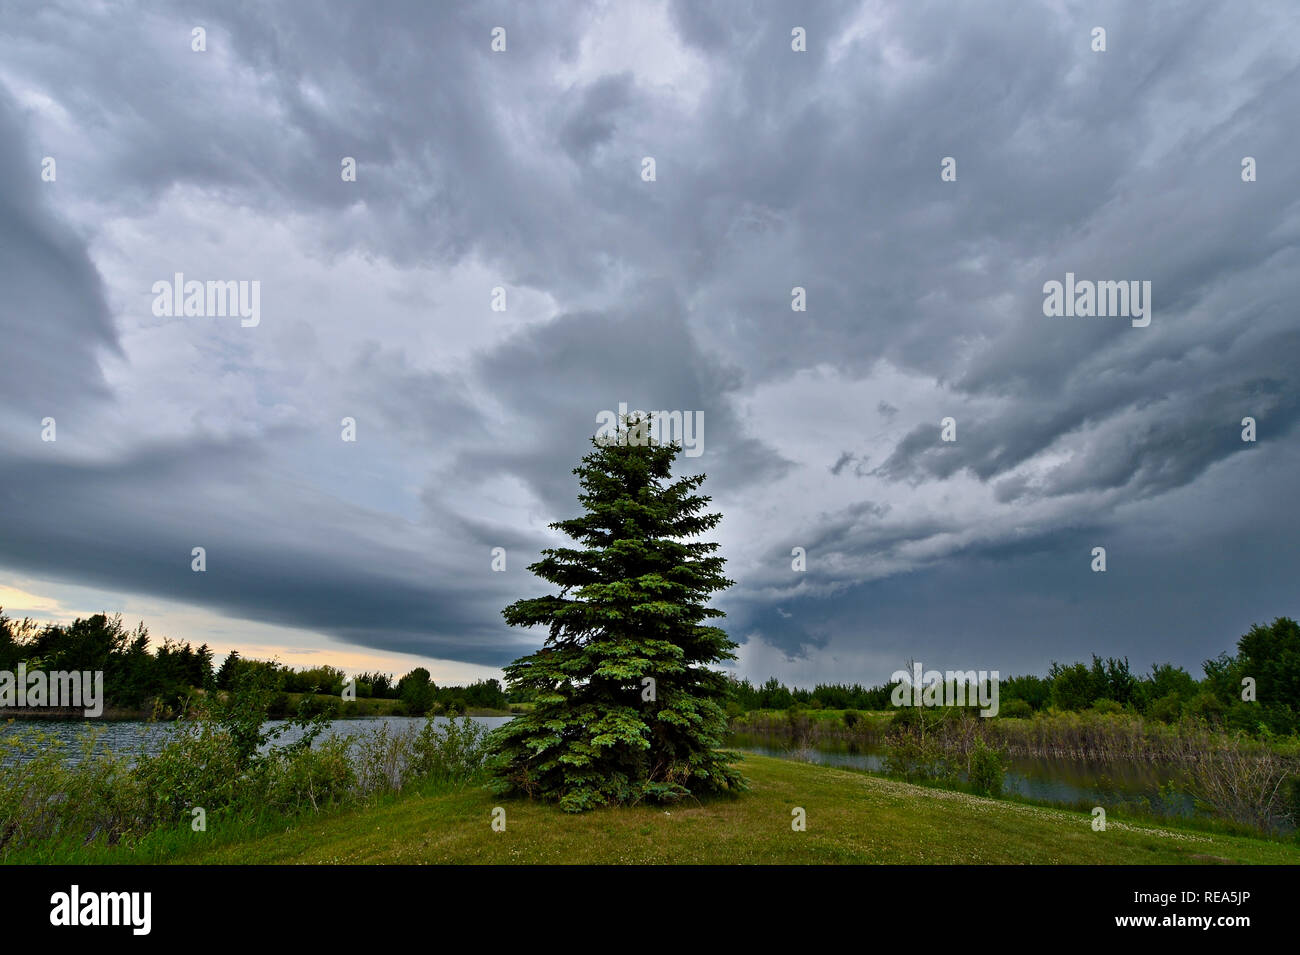 A wide angle horizontal image of storm clouds moving over a natural pond and green space in rural Alberta Canada. - Stock Image